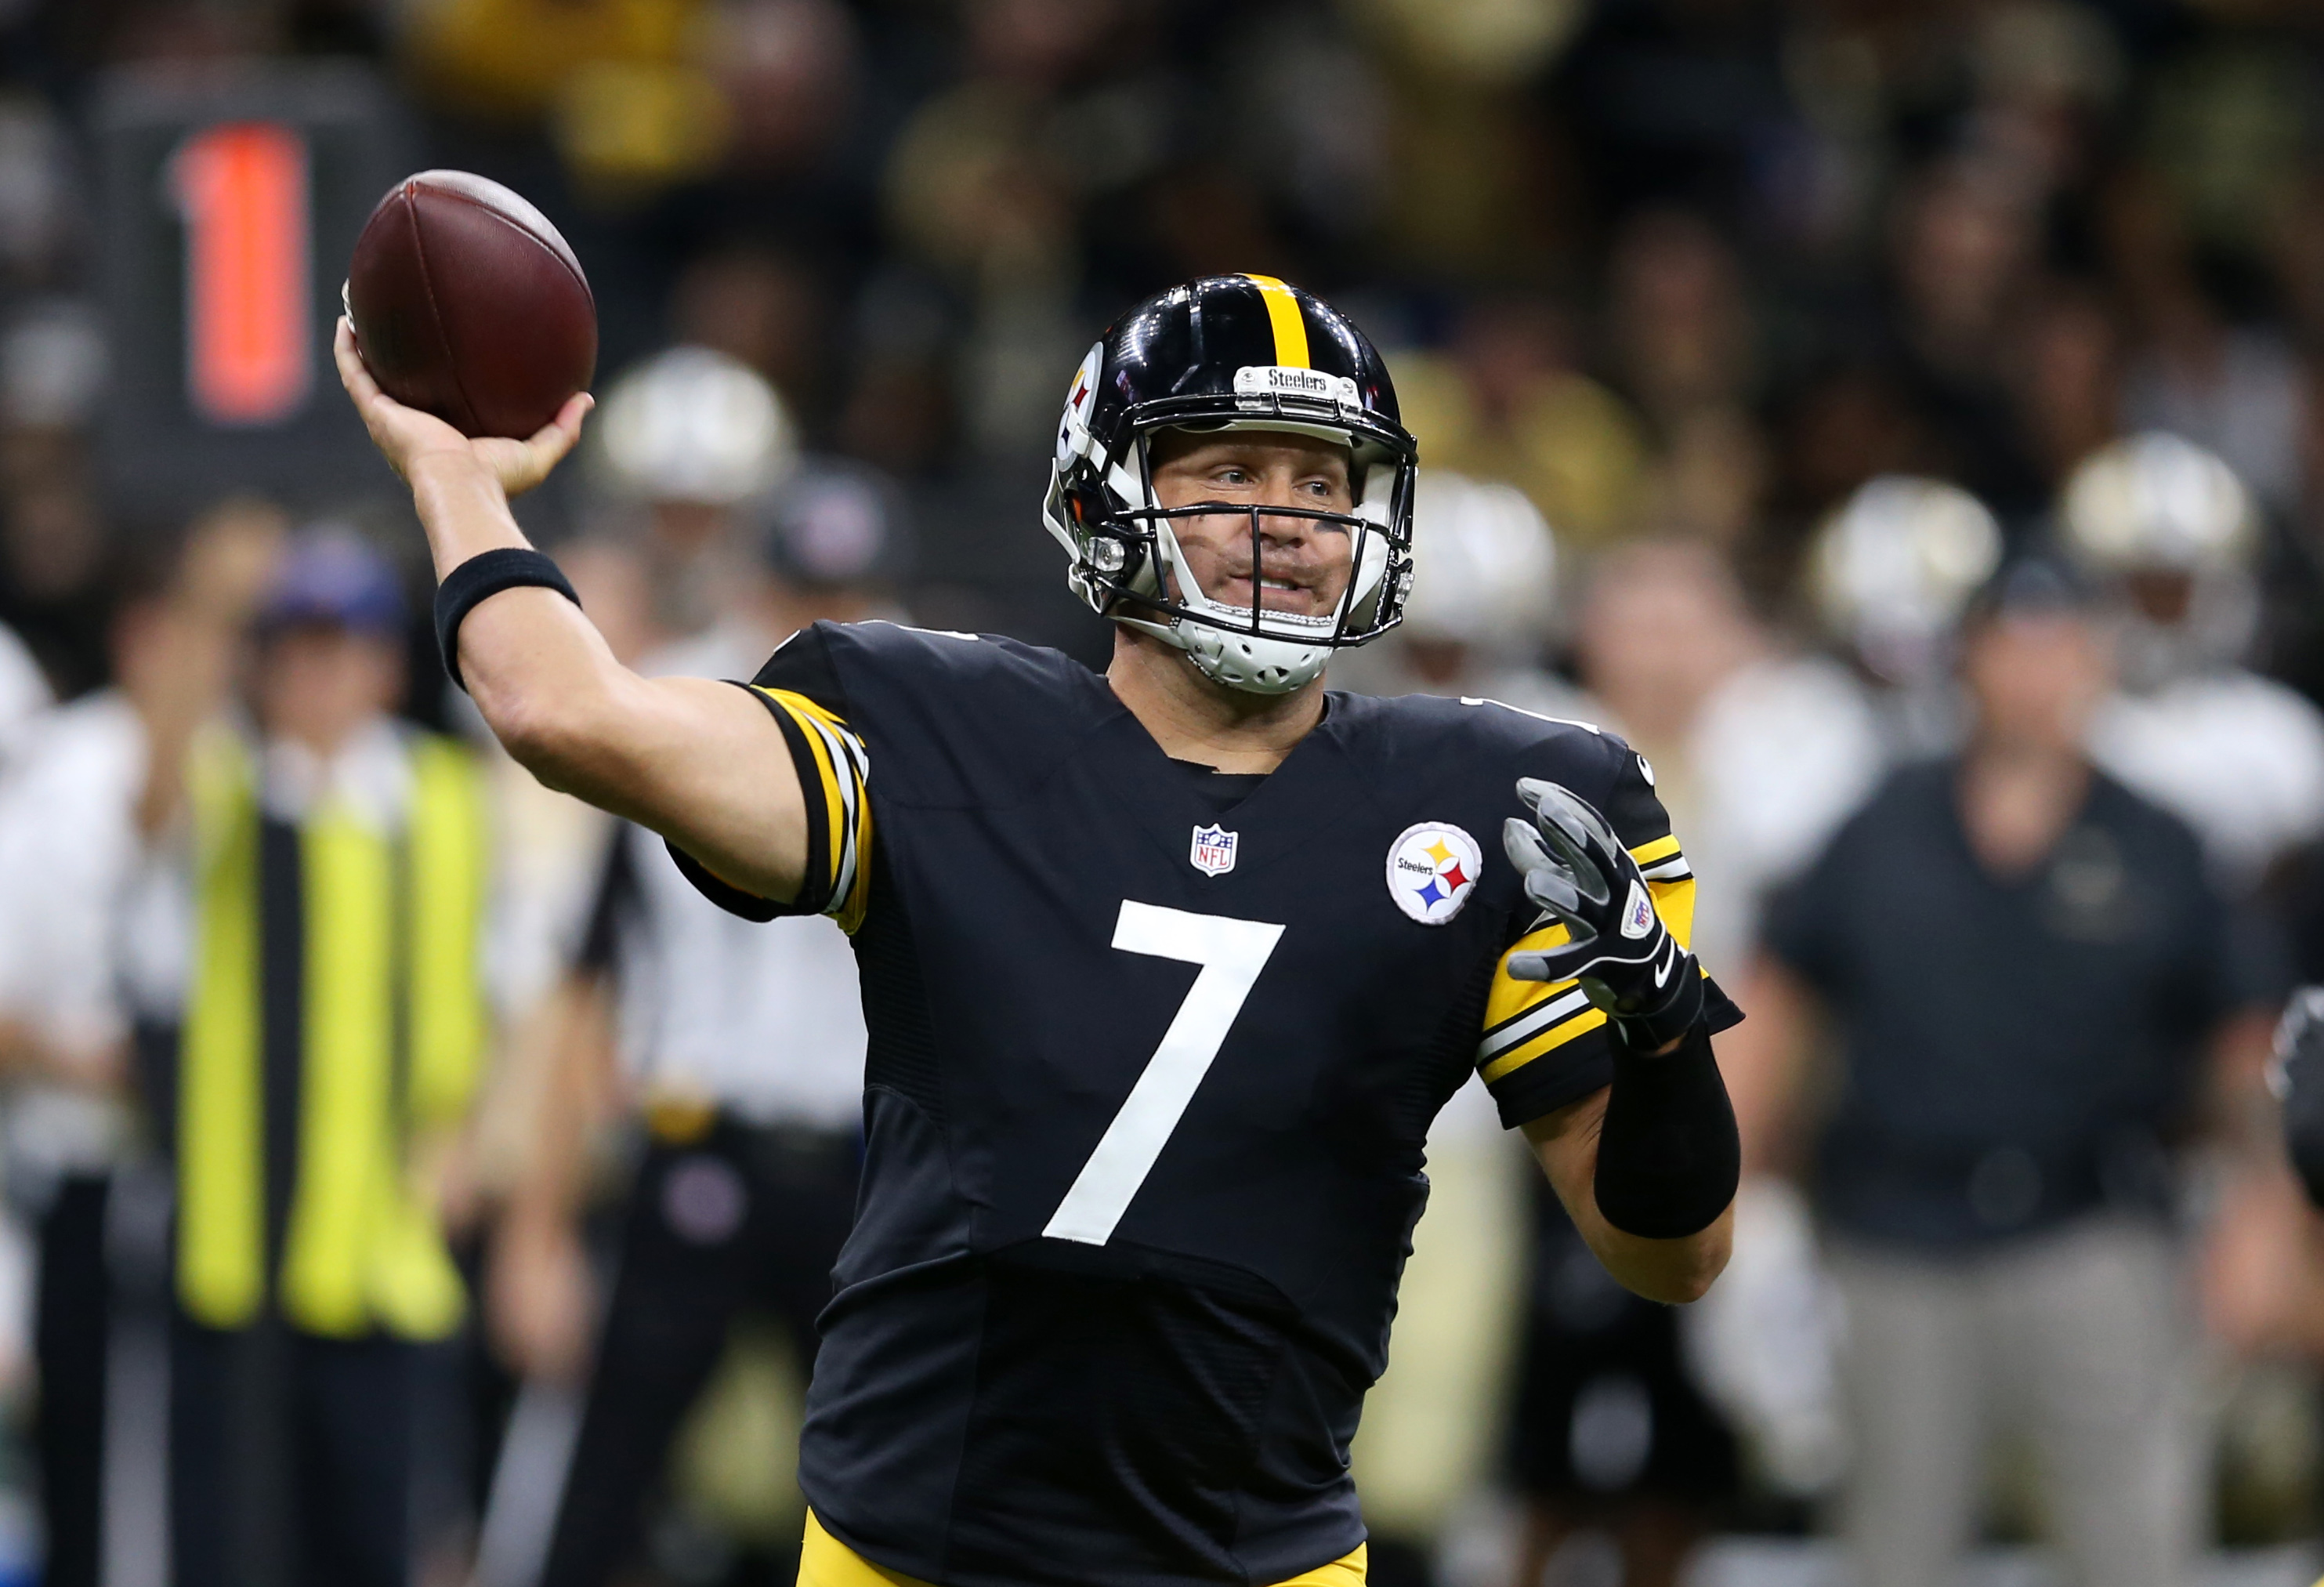 If Ben Roethlisberger & his supporting cast can remain healthy in 2016, he'll be a high-end fantasy quarterback.